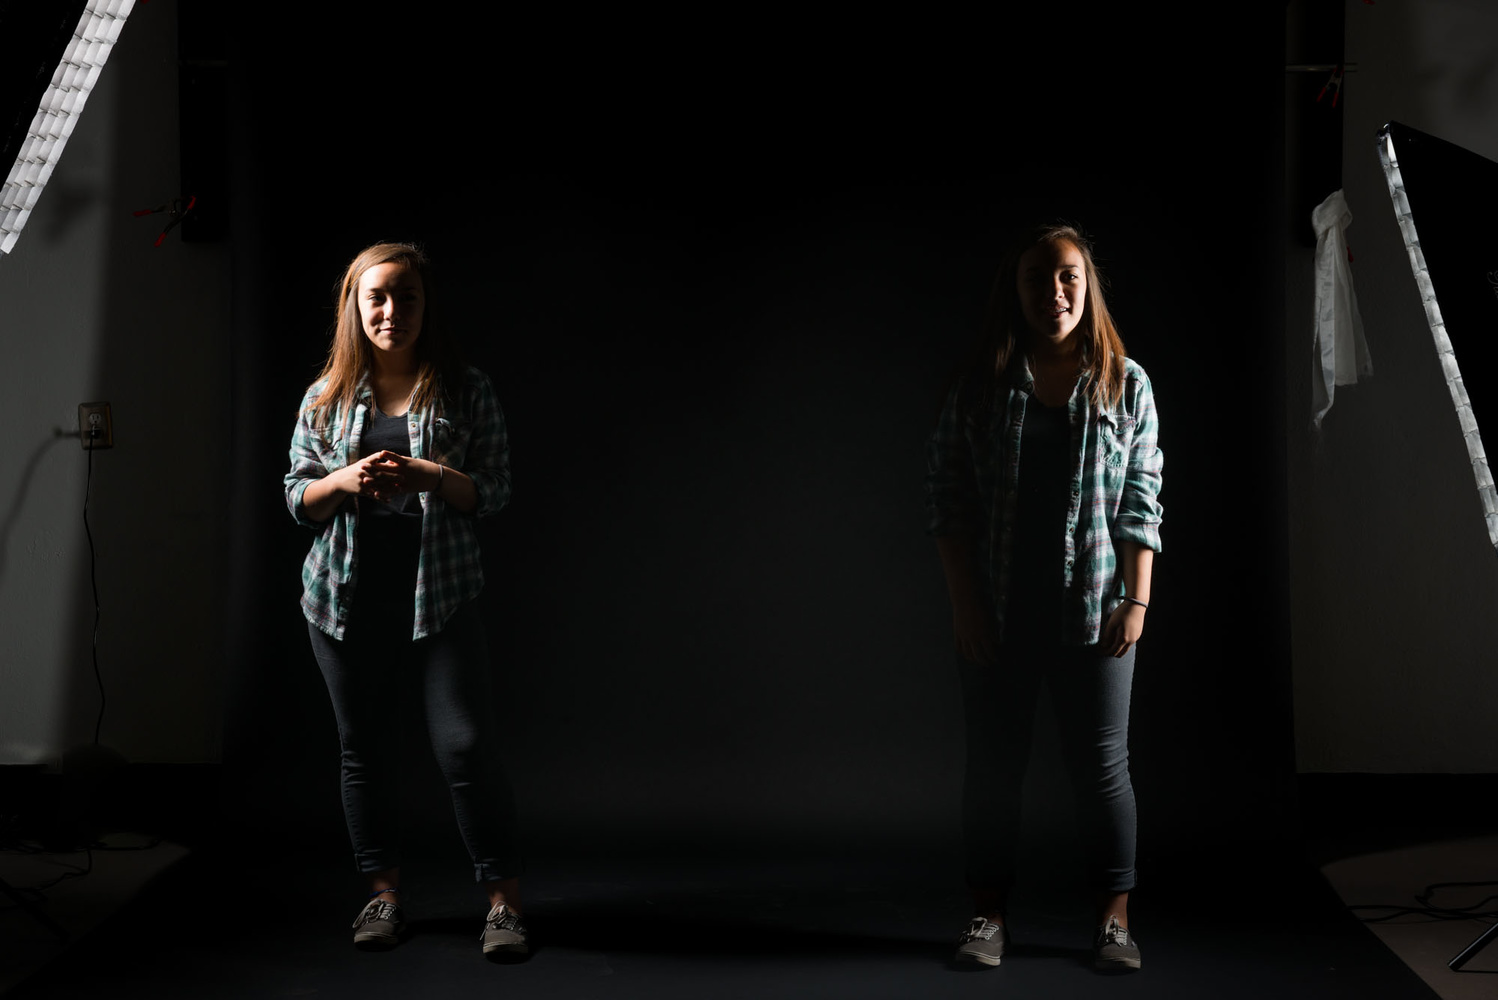 Testing Lights With An Eighth Grade Job Shadower Can Be Fun